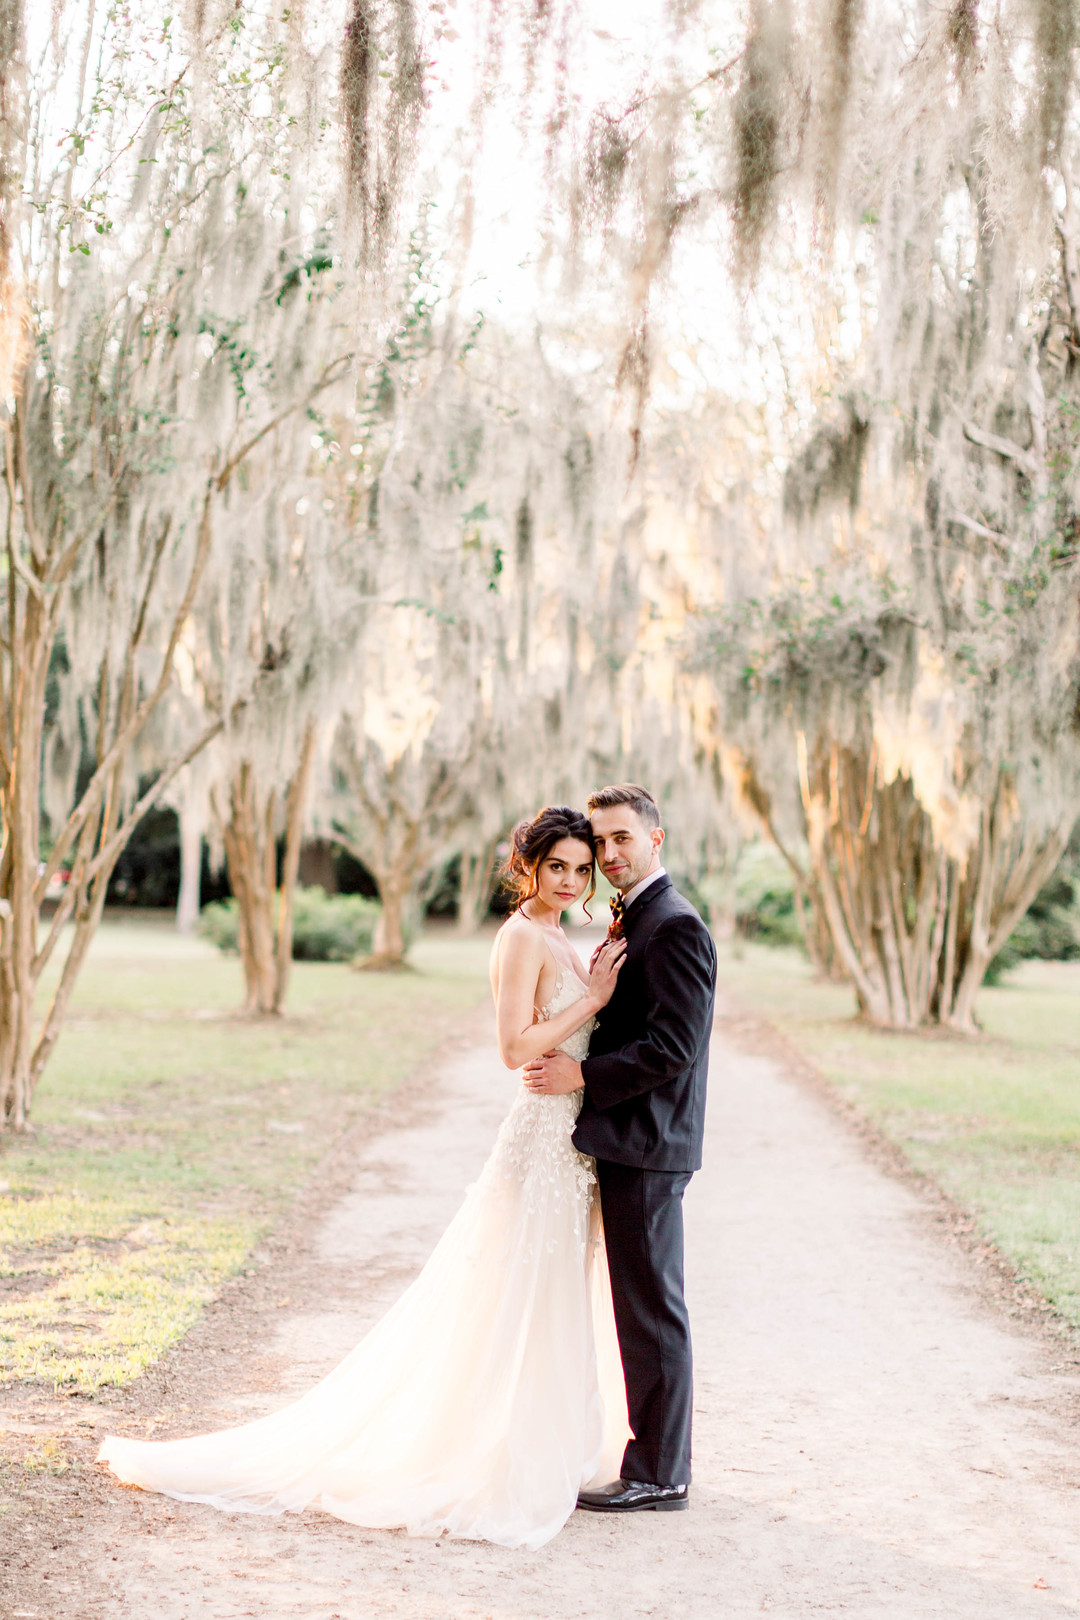 downtown-charleston-wedding-elopement-36.jpg